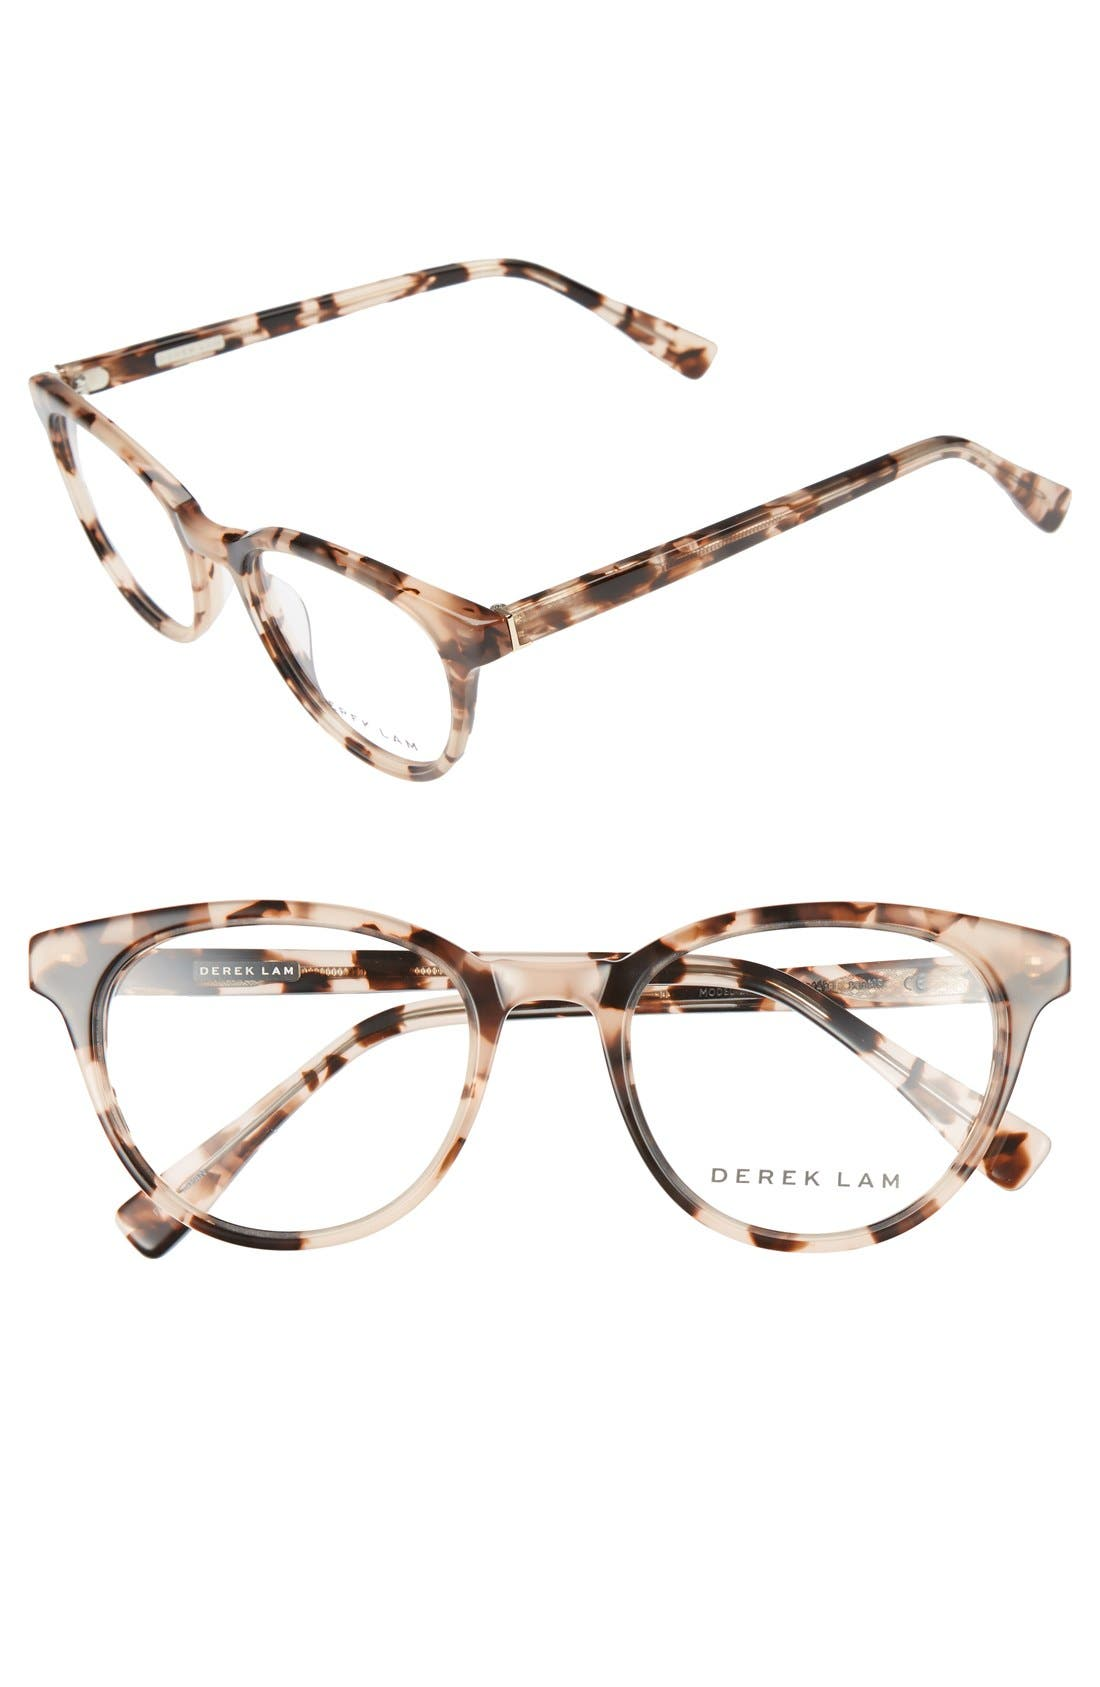 Main Image - Derek Lam 50mm Optical Glasses